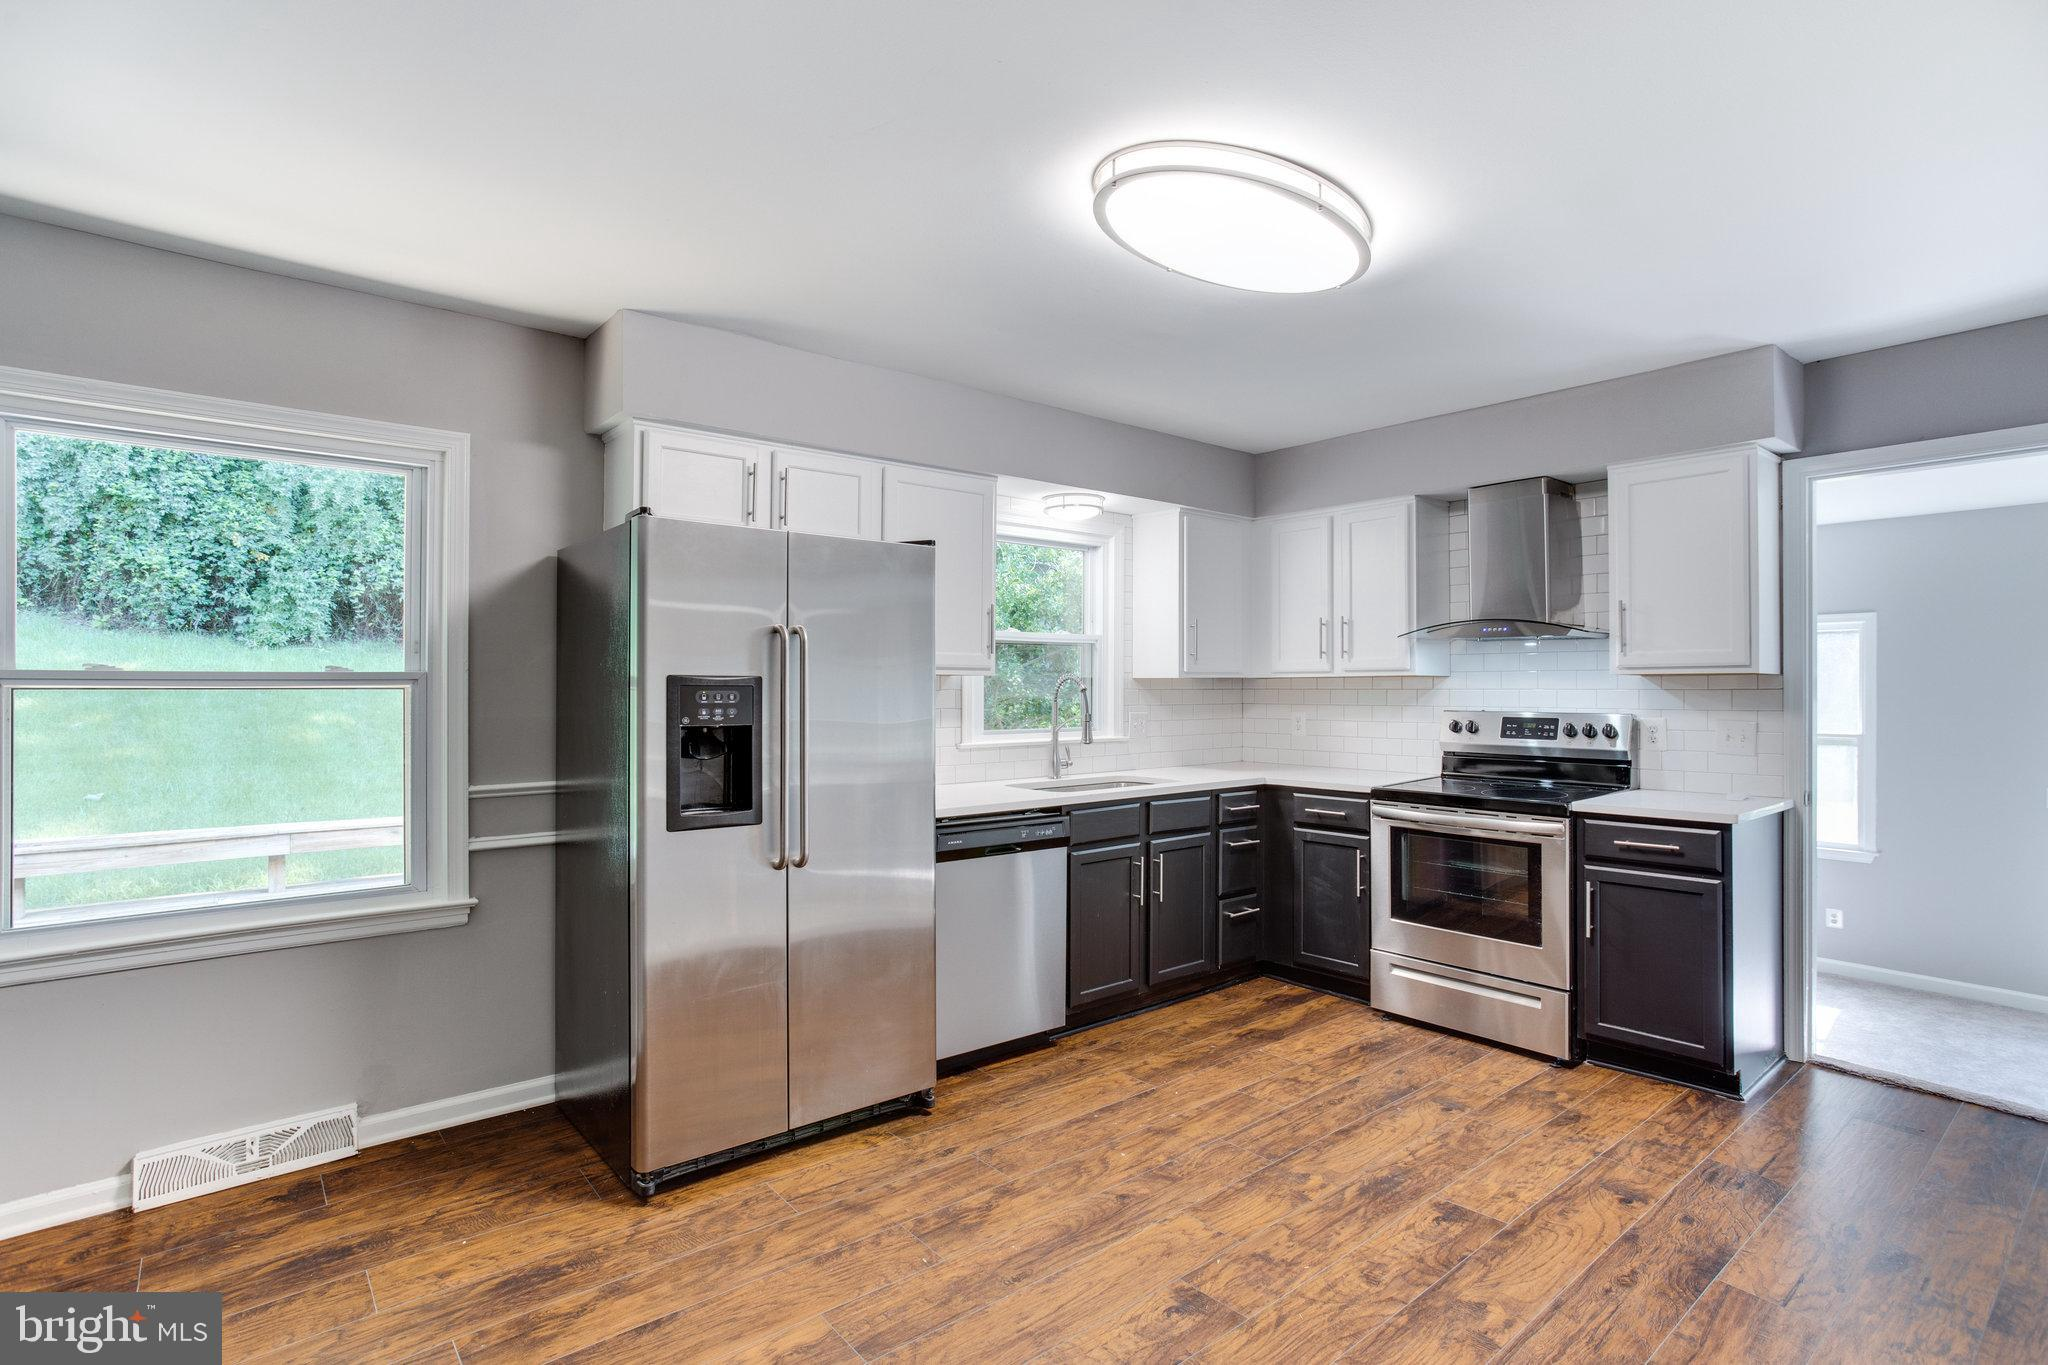 Priced To Sell Fast! Desirable Remodeled Rambler, Updated Kitchen with Quartz Counters, Stainless St